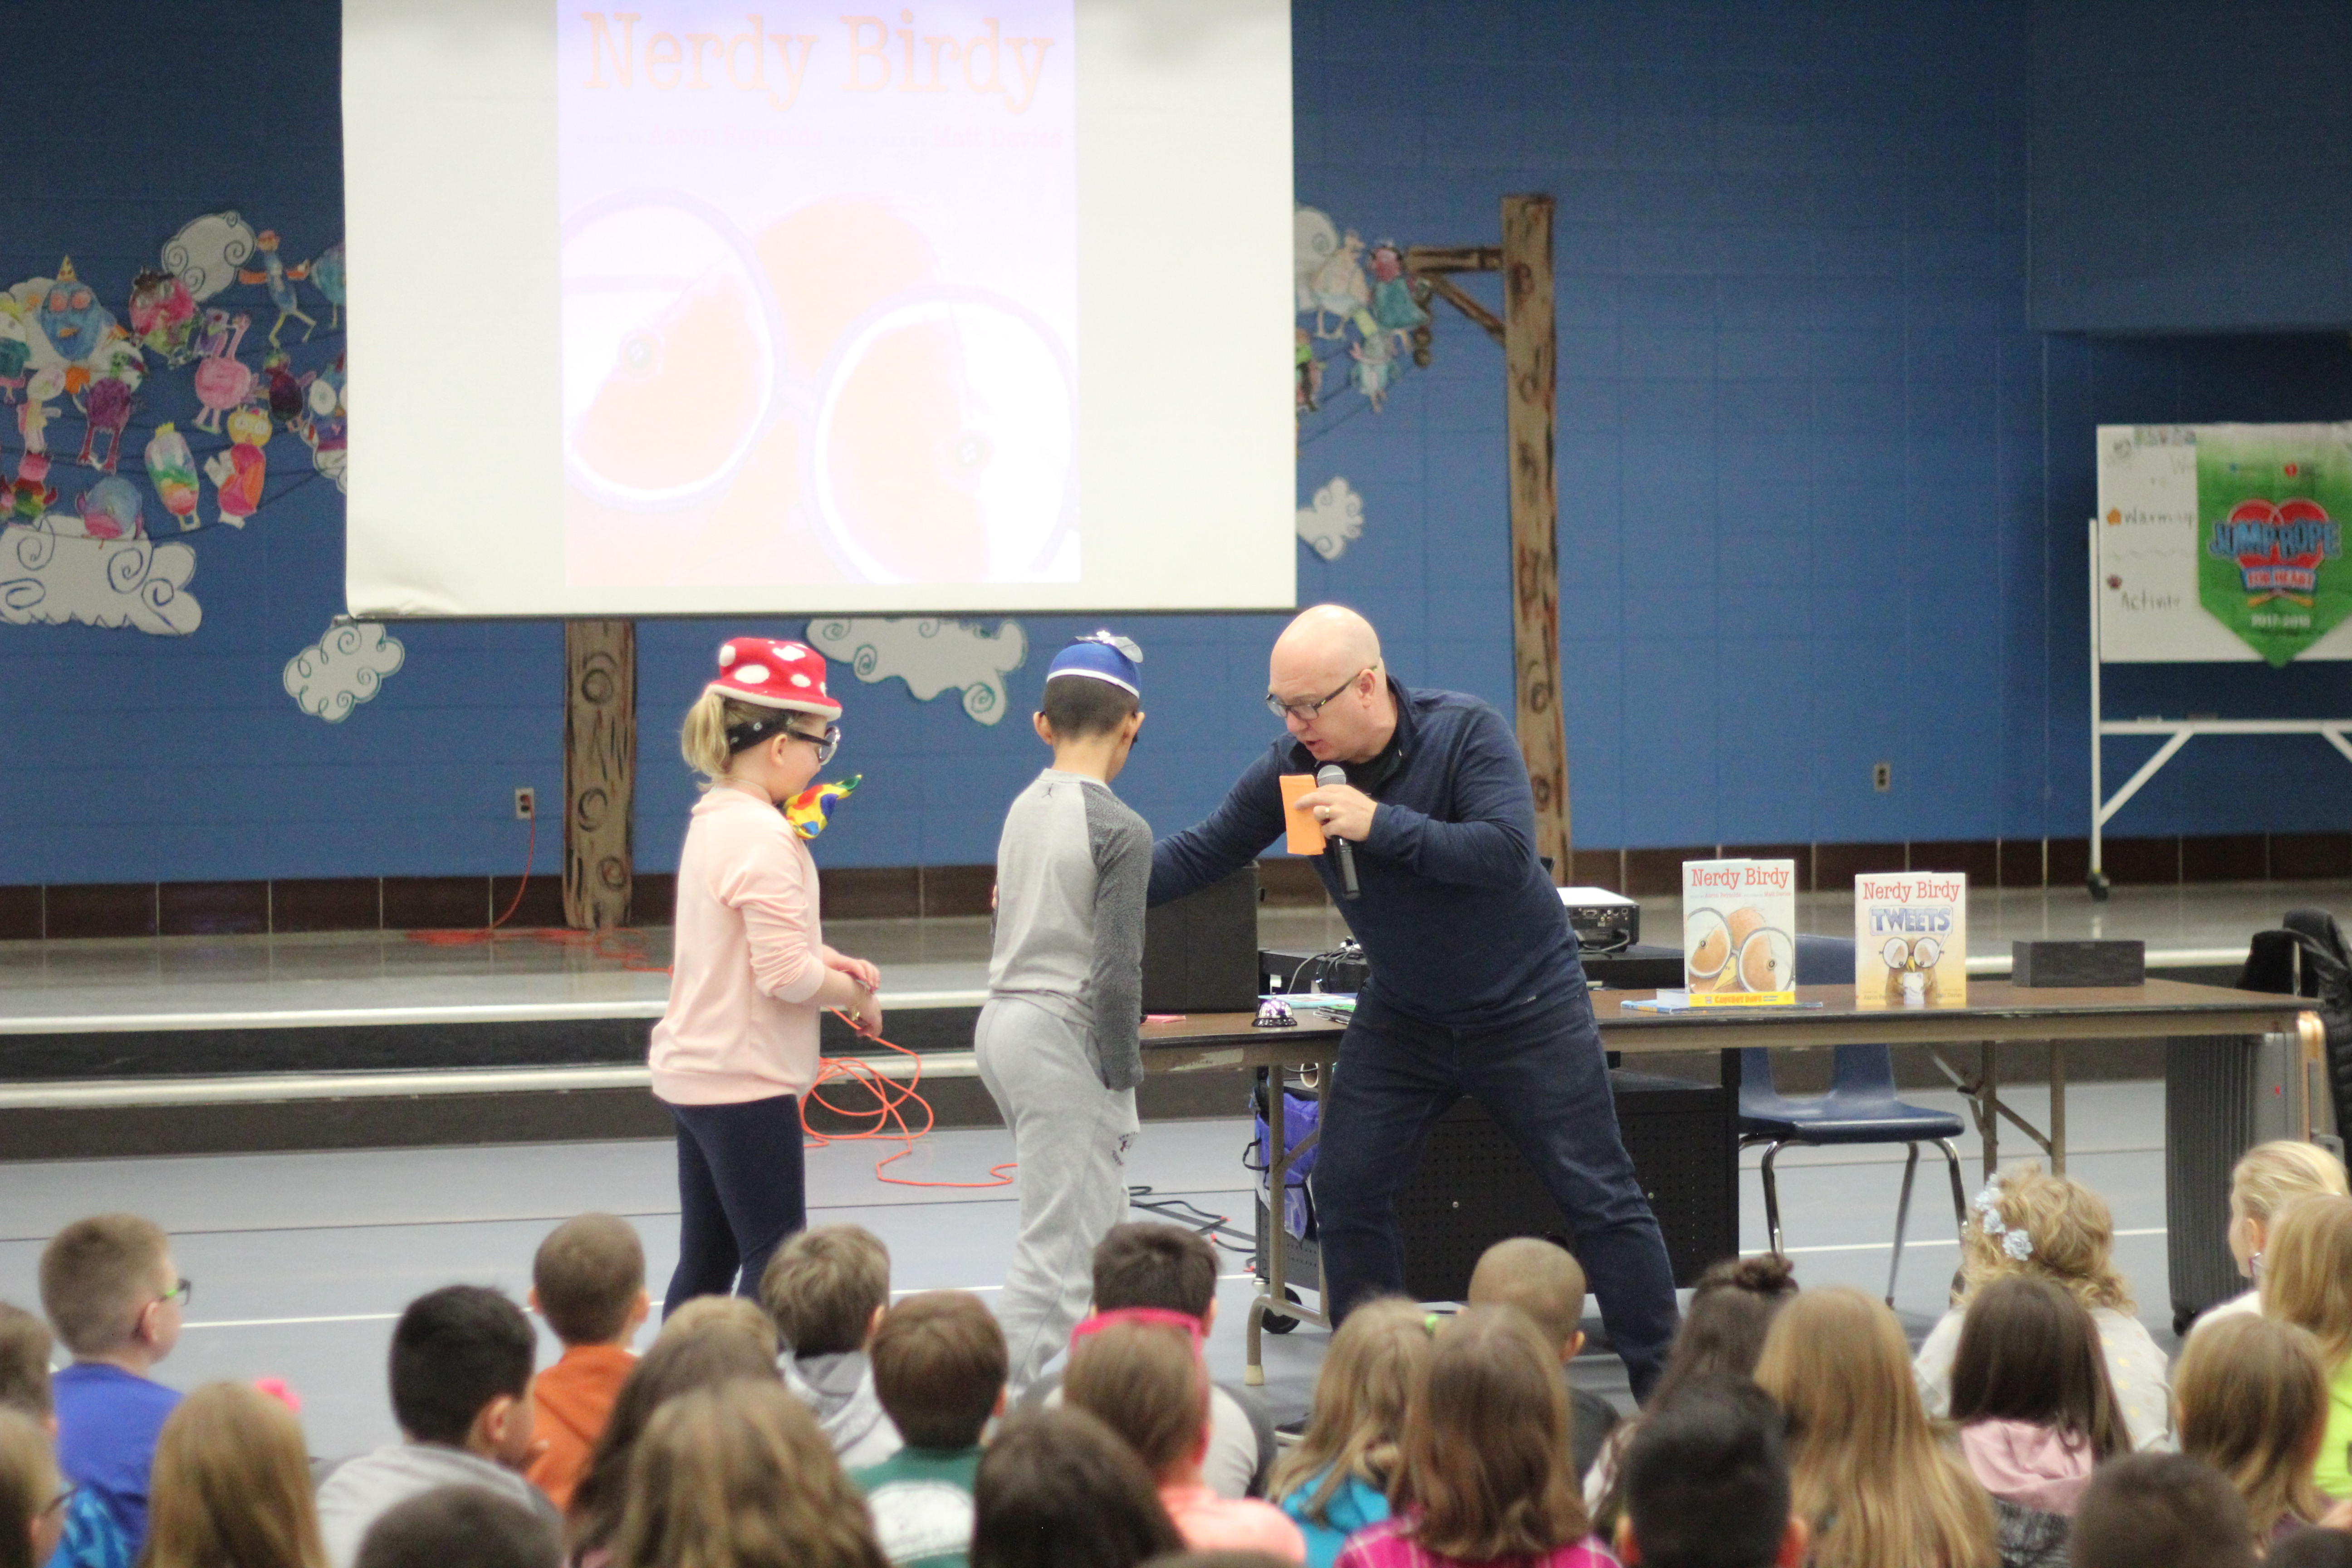 Reynolds plays a game with the students